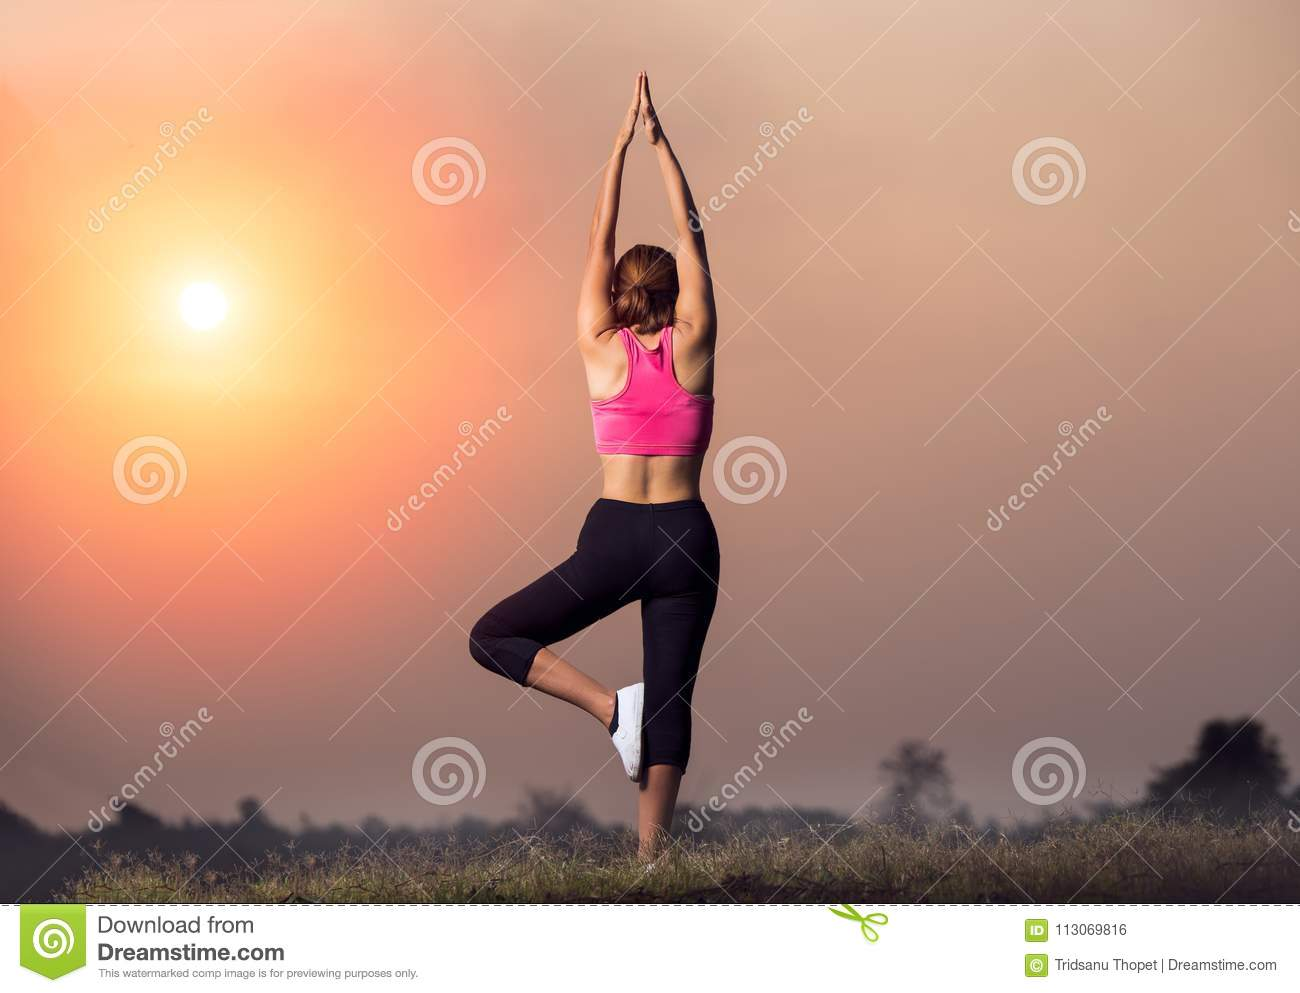 Exercise or yoga pose stock photo. Image of adult, outdoors